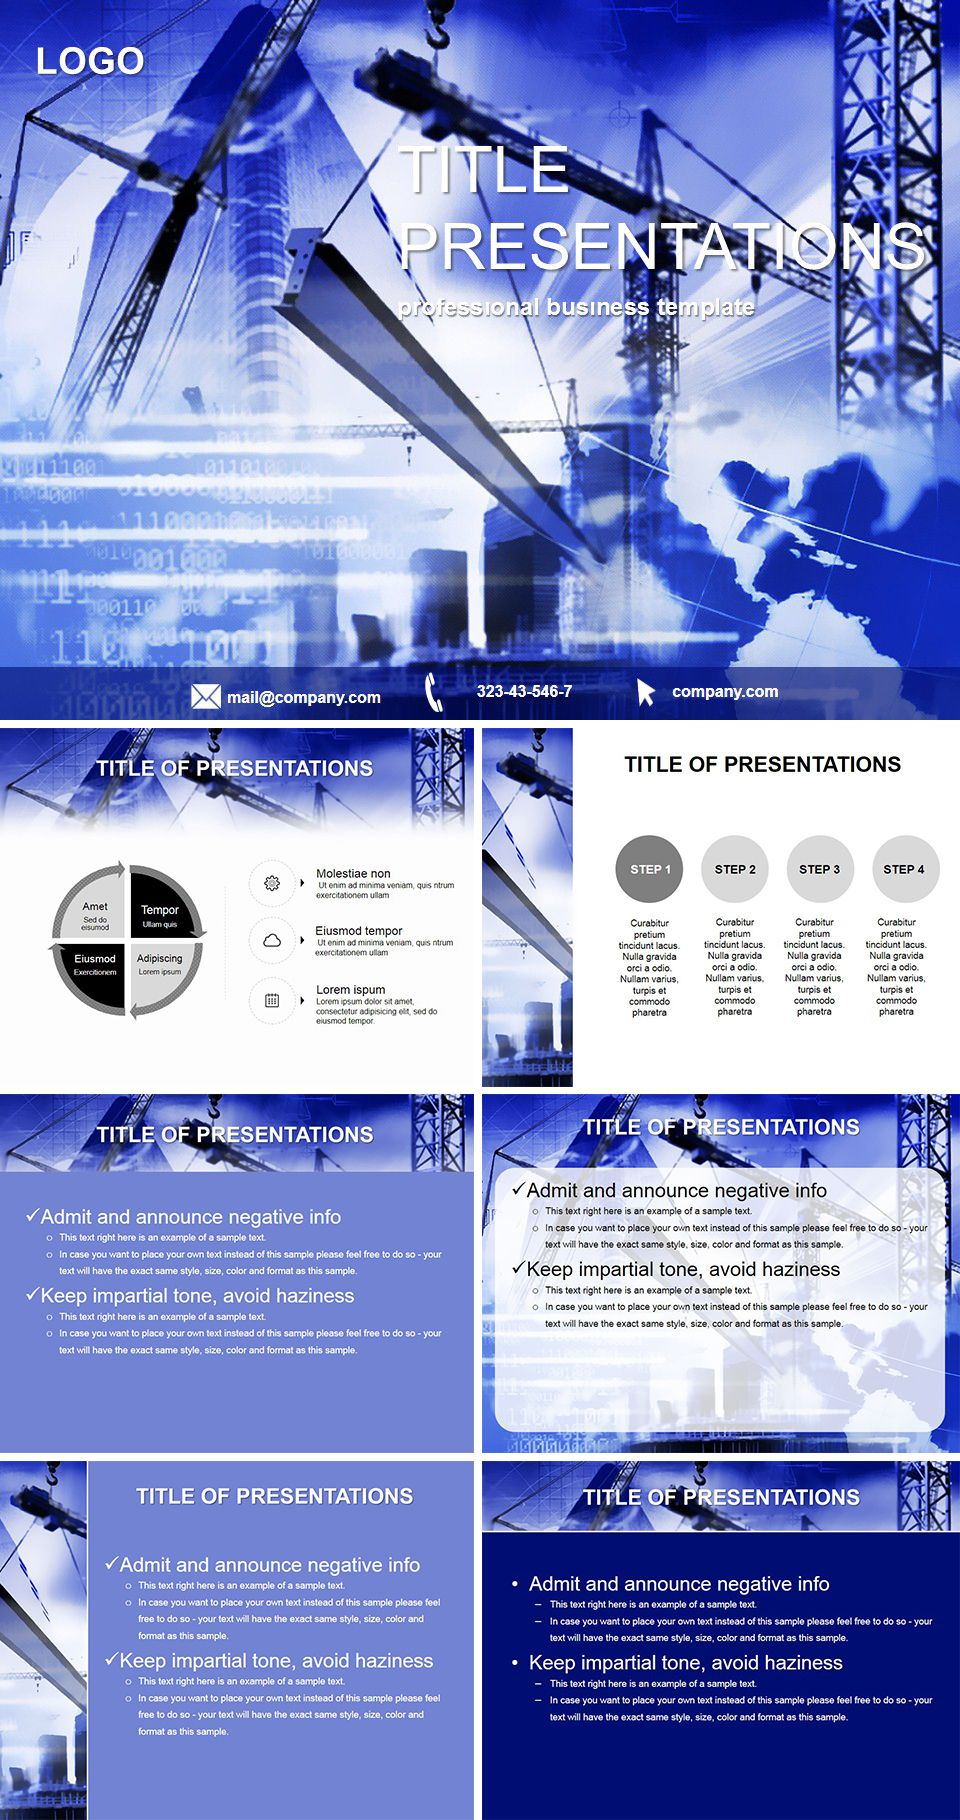 Download construction keynote themes keynote themes pinterest office manager template for powerpoint presentations on space office office management etc alramifo Gallery